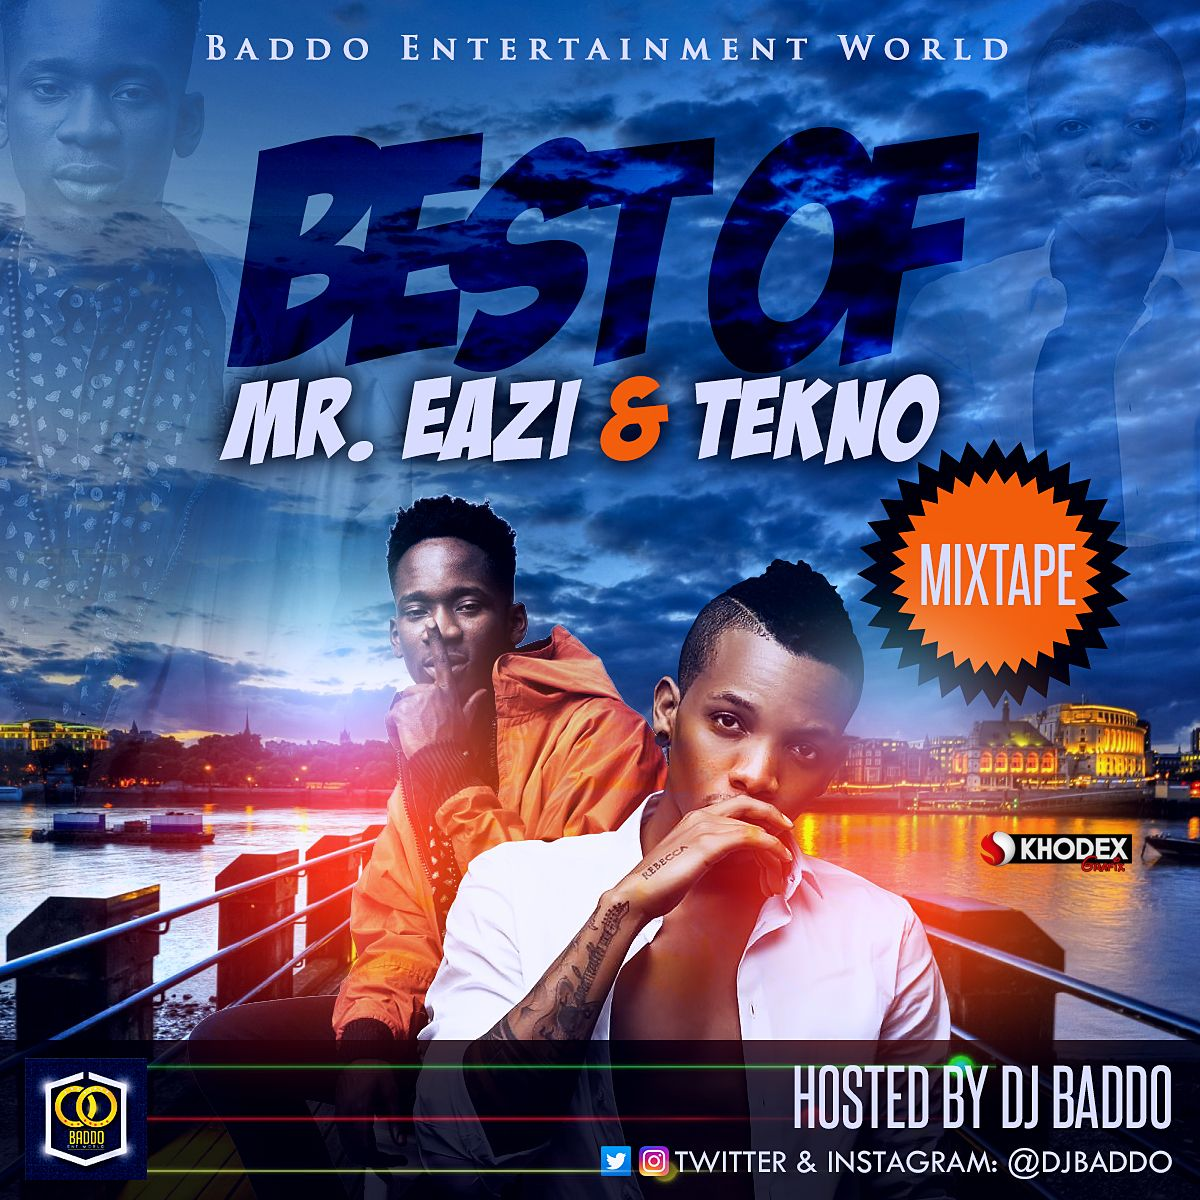 MIXTAPE: Dj Baddo - Best Of Mr Eazi And Tekno Mix